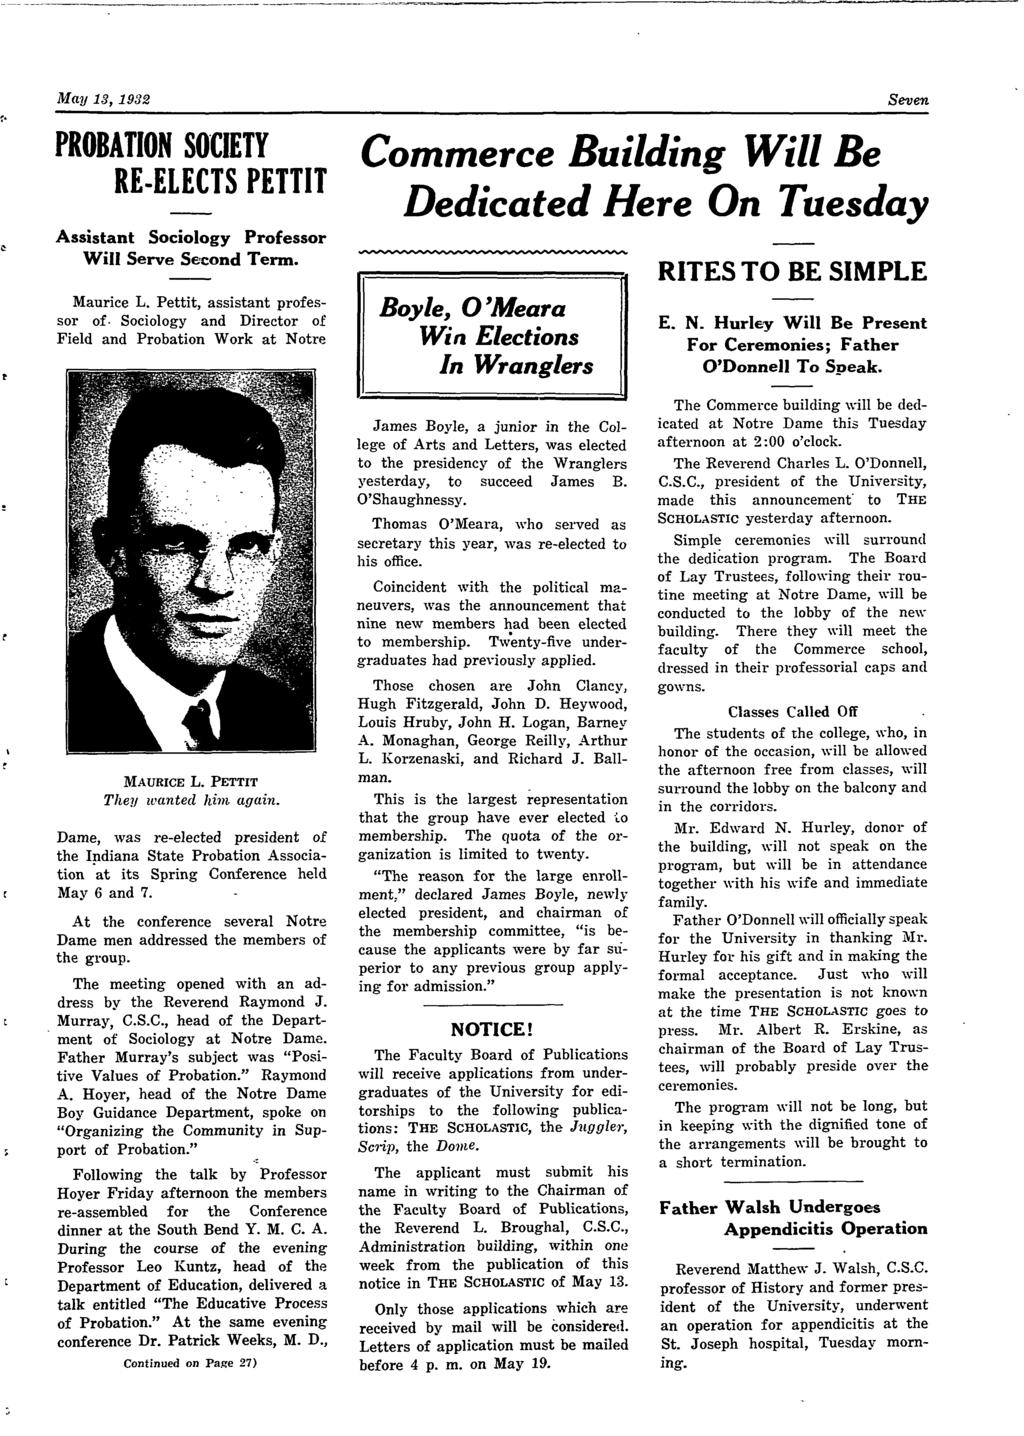 May 13, 1932 PROBATION SOCIETY RE-ELECTS PETTIT Assistant Sociology Professor Will Serve Second Term. Maurice L.